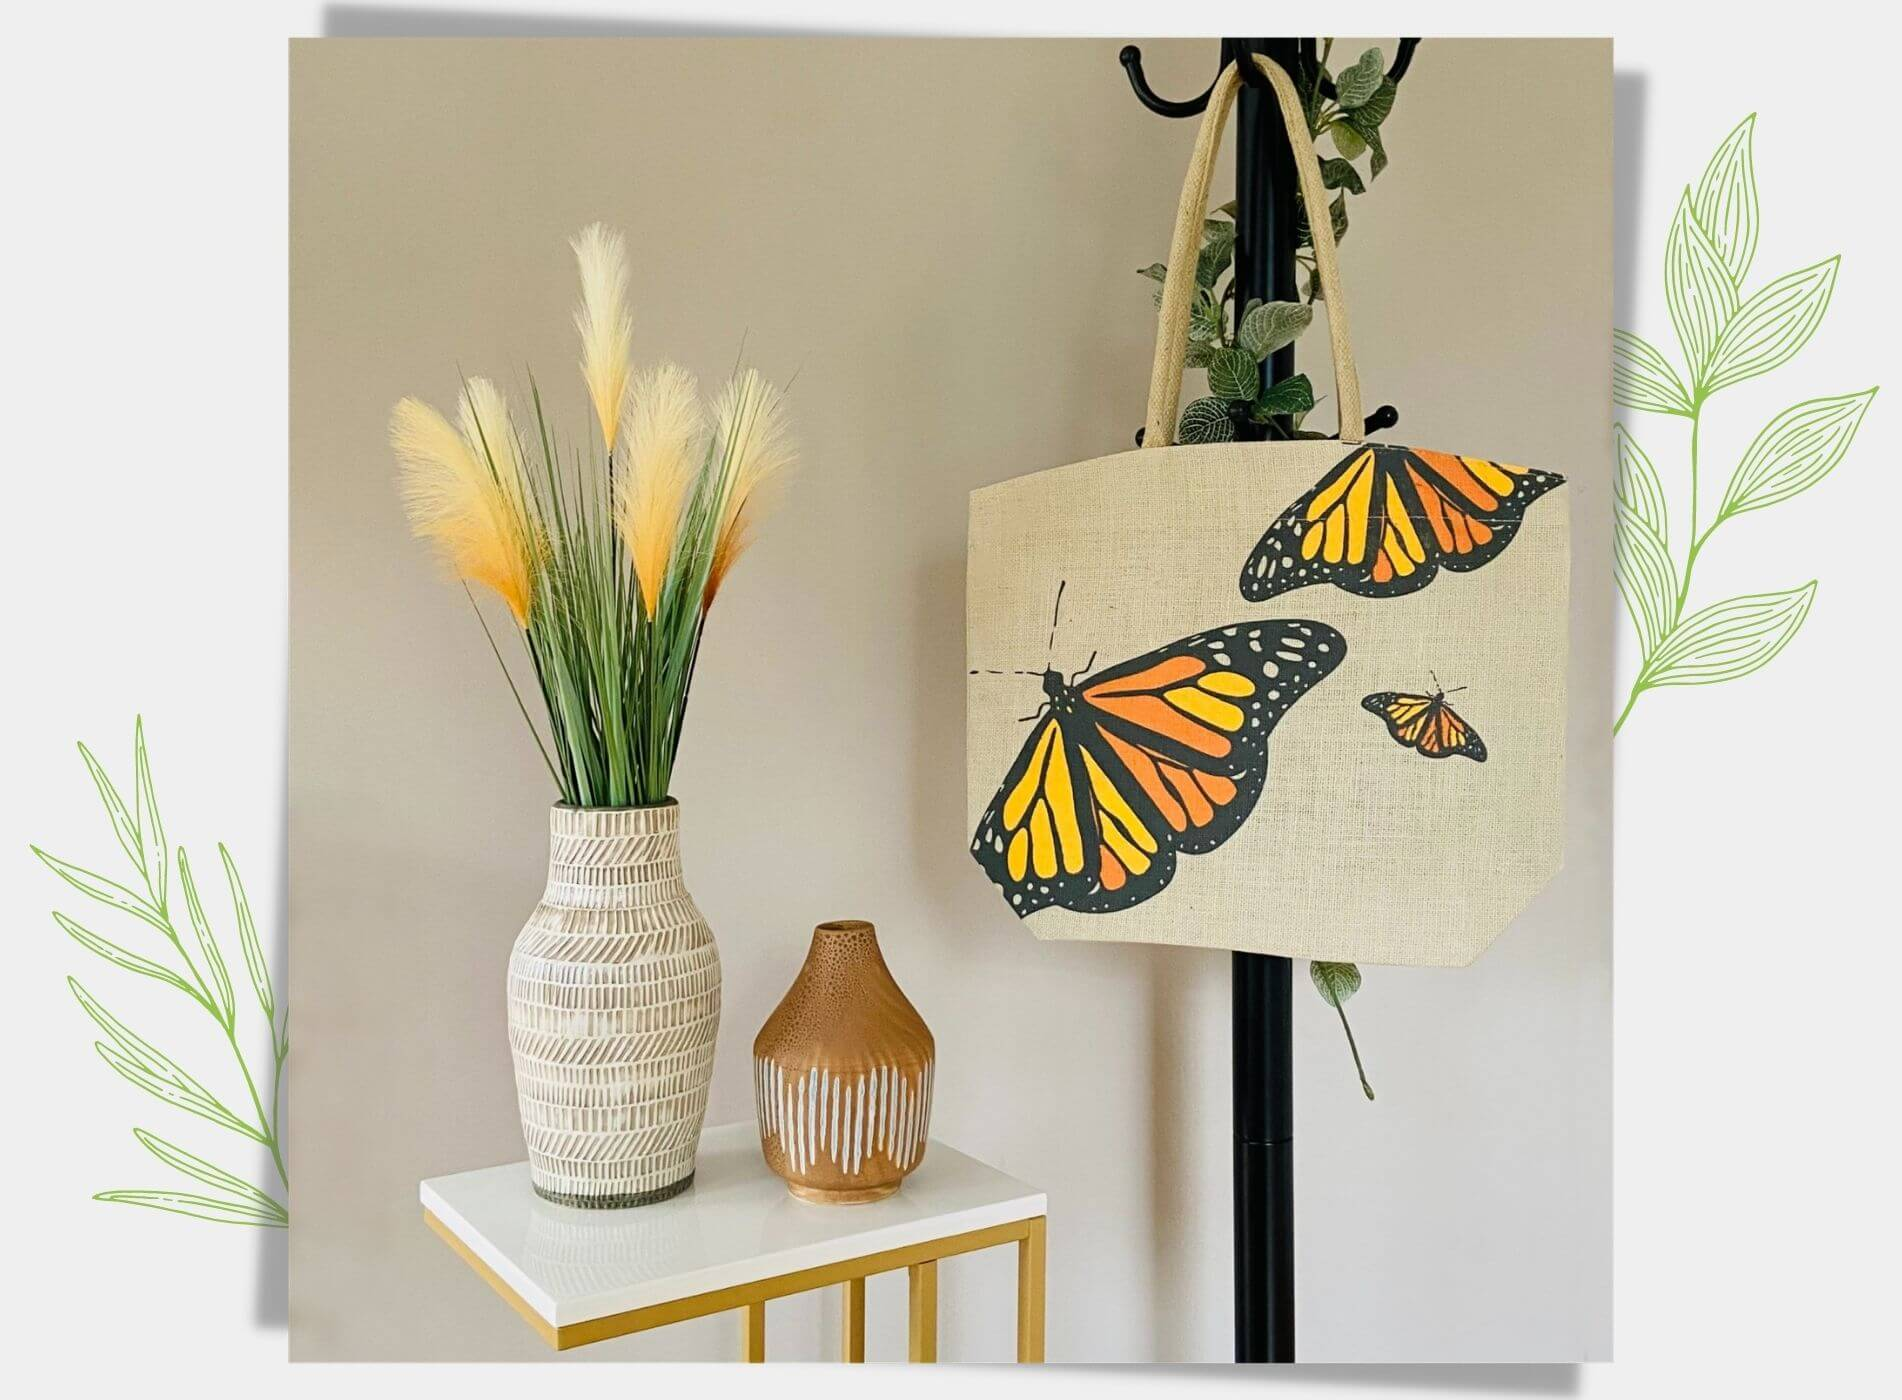 Burlap tote bag with butterfly print hanging on a stand